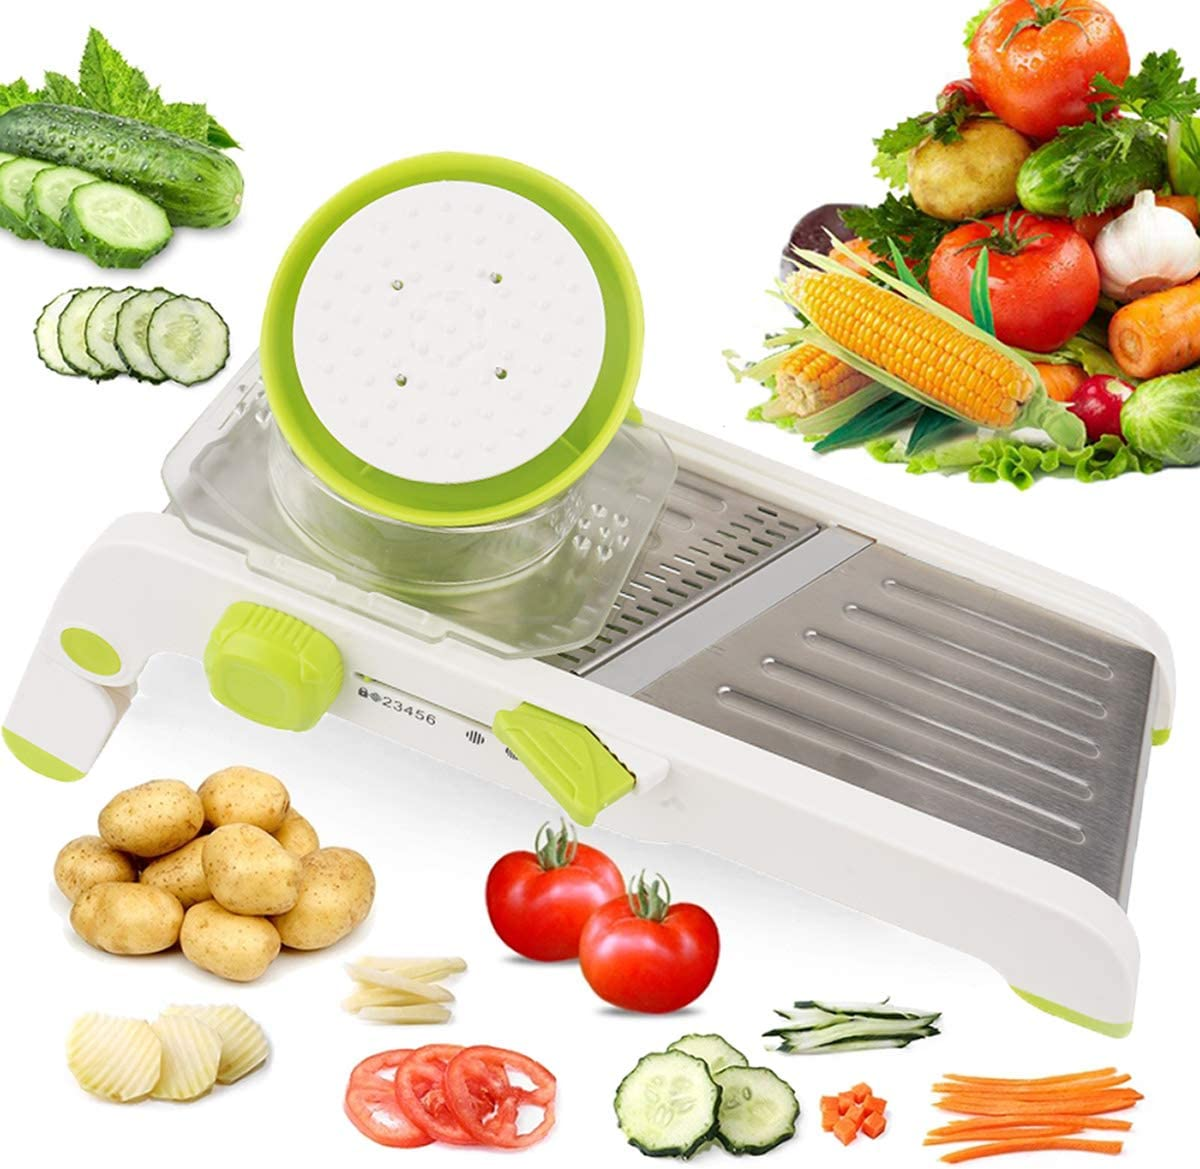 Mandoline Slicer Adjustable Thickness Vegetable Slicer, Fruit Slicer, French Fry Cutter, Food Waffle Sharp Stainless Steel Blades (Green)